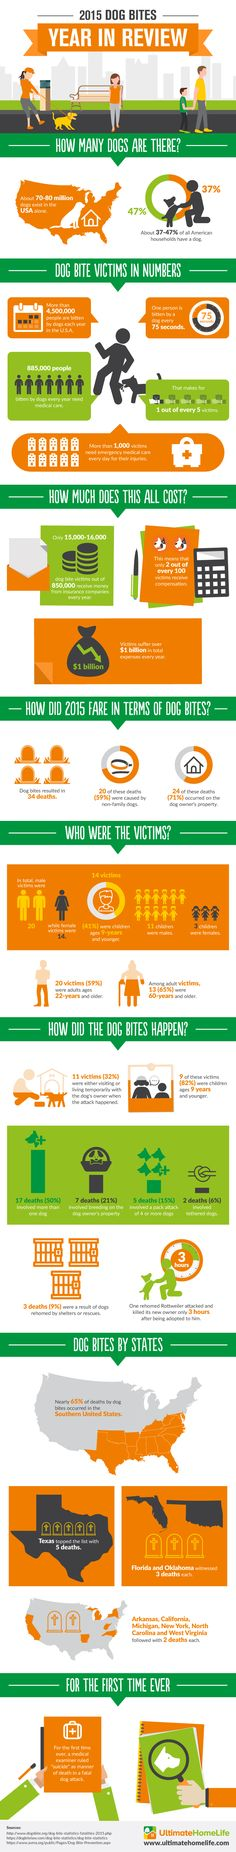 Spanning the third week of May of every year is National Dog Bite Prevention Week. Here is National Dog Bite Prevention Week in Review for 2015!